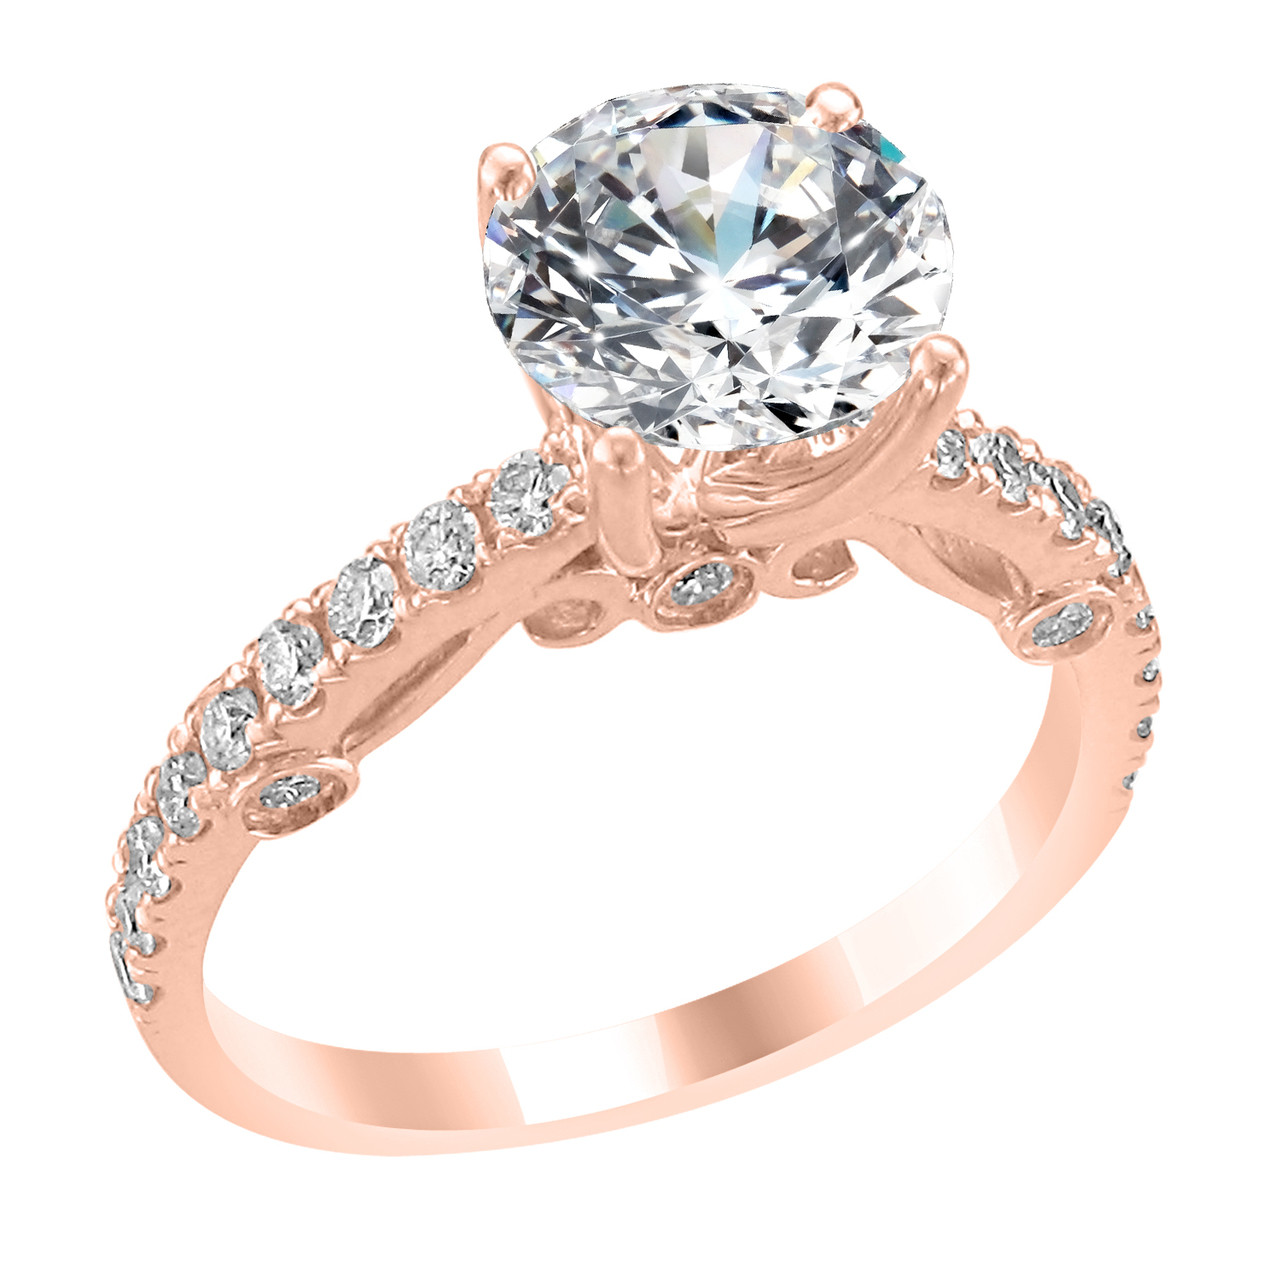 Rose Gold Wedding Ring.14k Rose Gold Engagement Ring With Diamond Side Accent Audrey Style